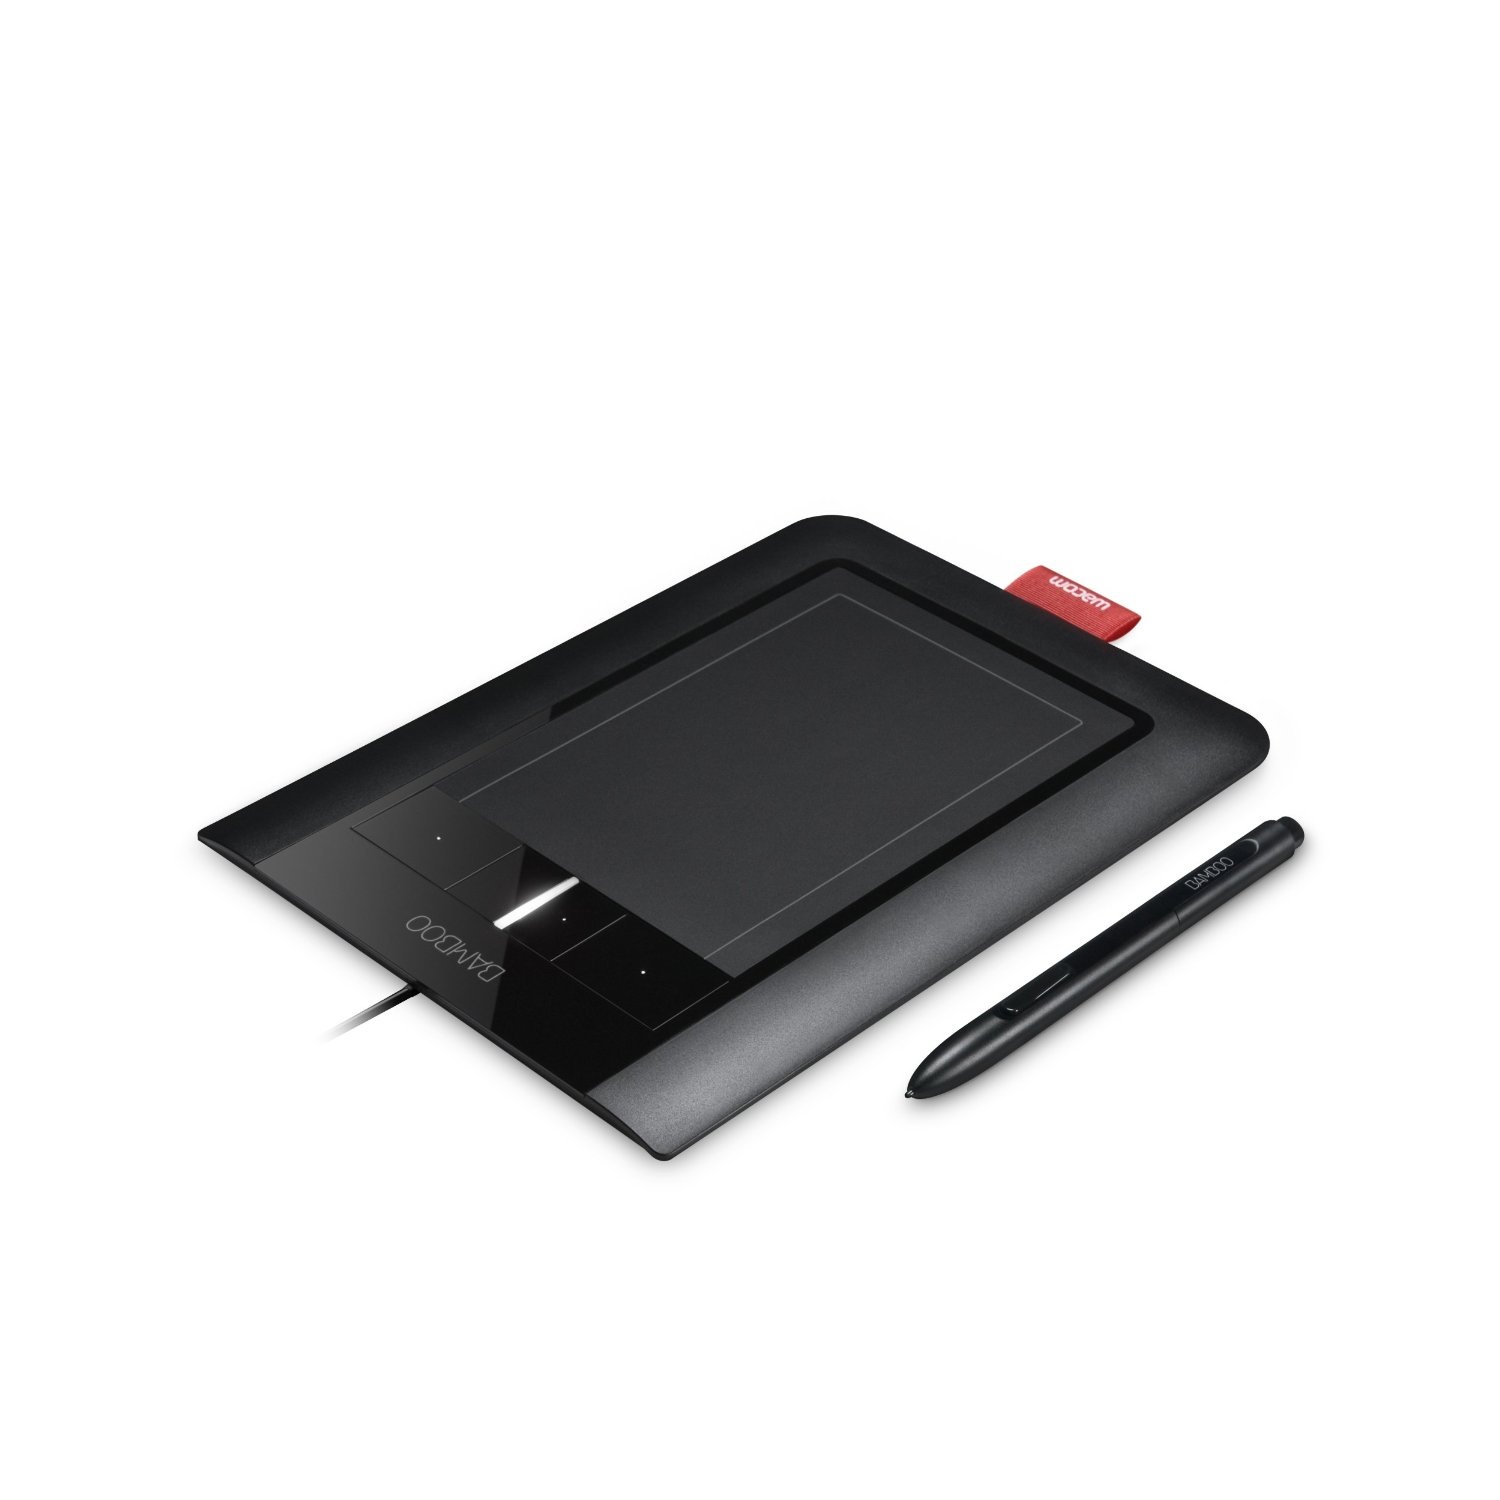 Wacom Bamboo Wacom Tablet Reviews And Opinions Wacom Bamboo Reviews